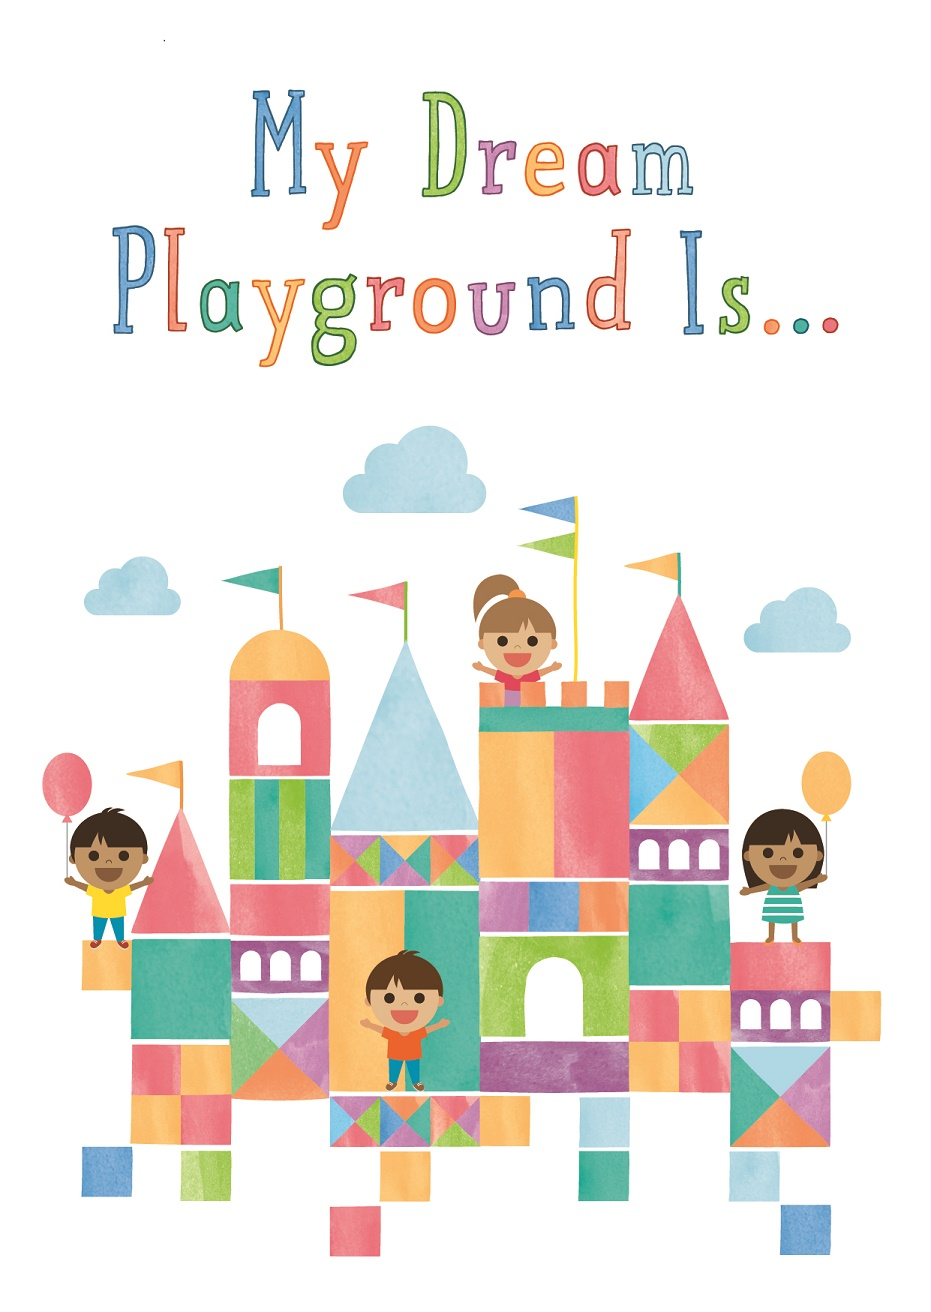 Colourful animated image of children with words 'My Dream Playground Is...'